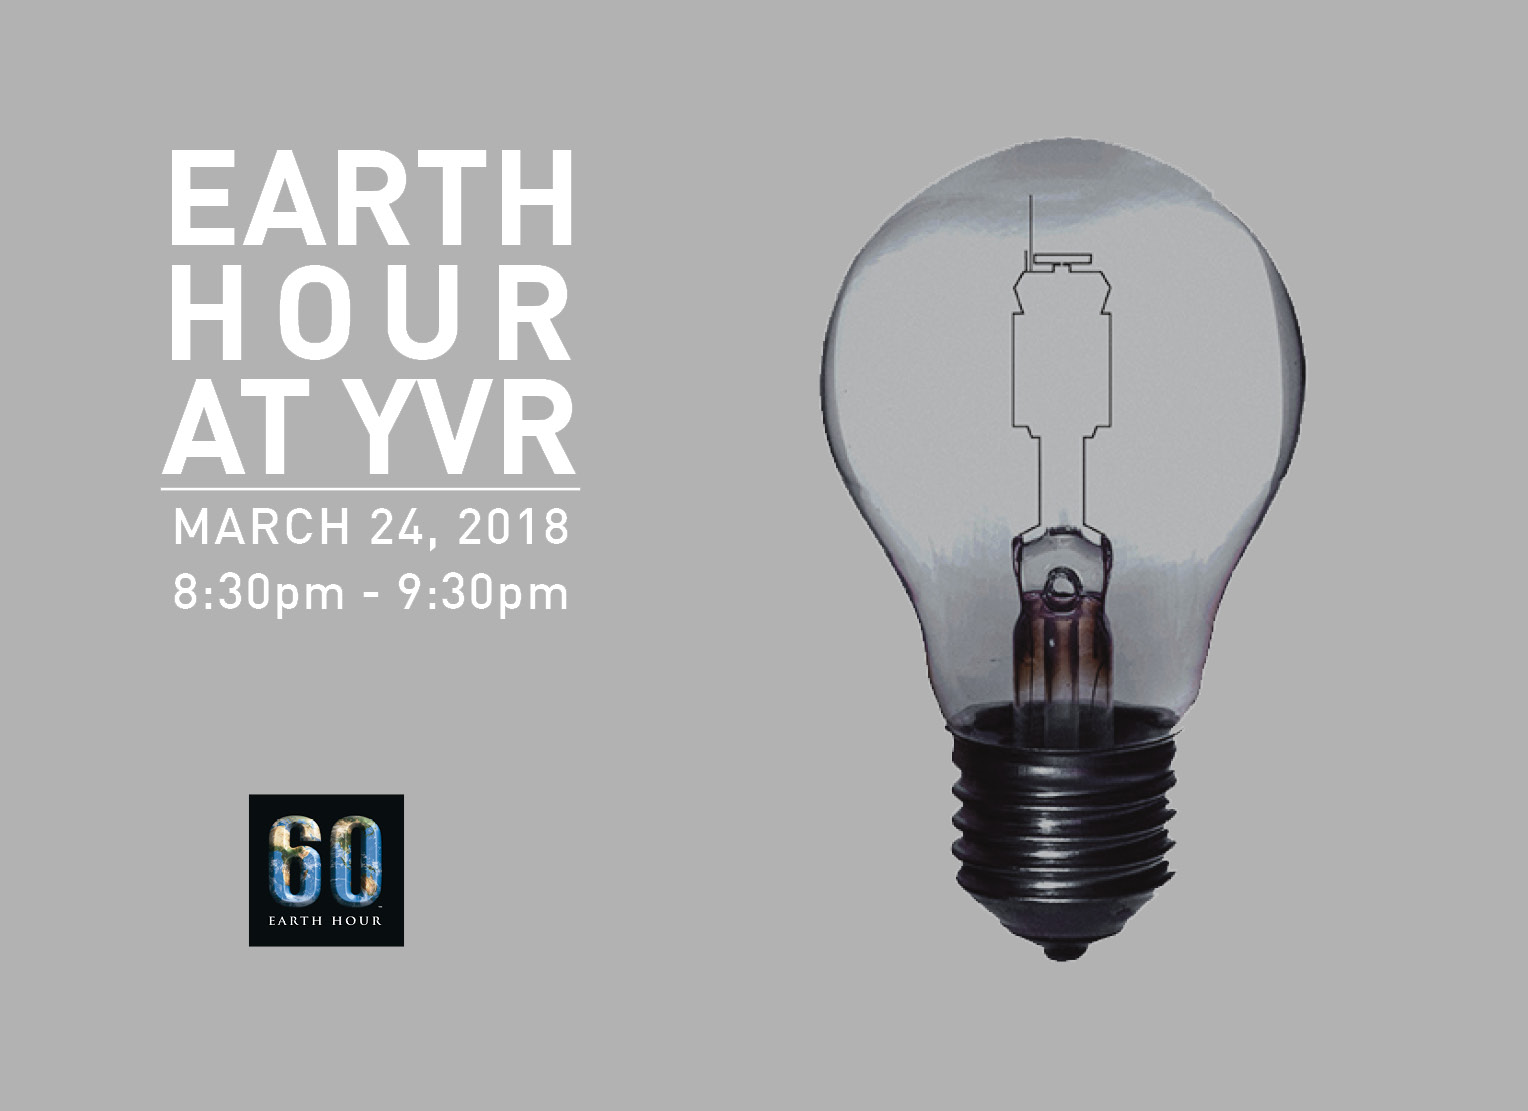 Earth Hour at YVR March 24 2030hrs to 2130hrs